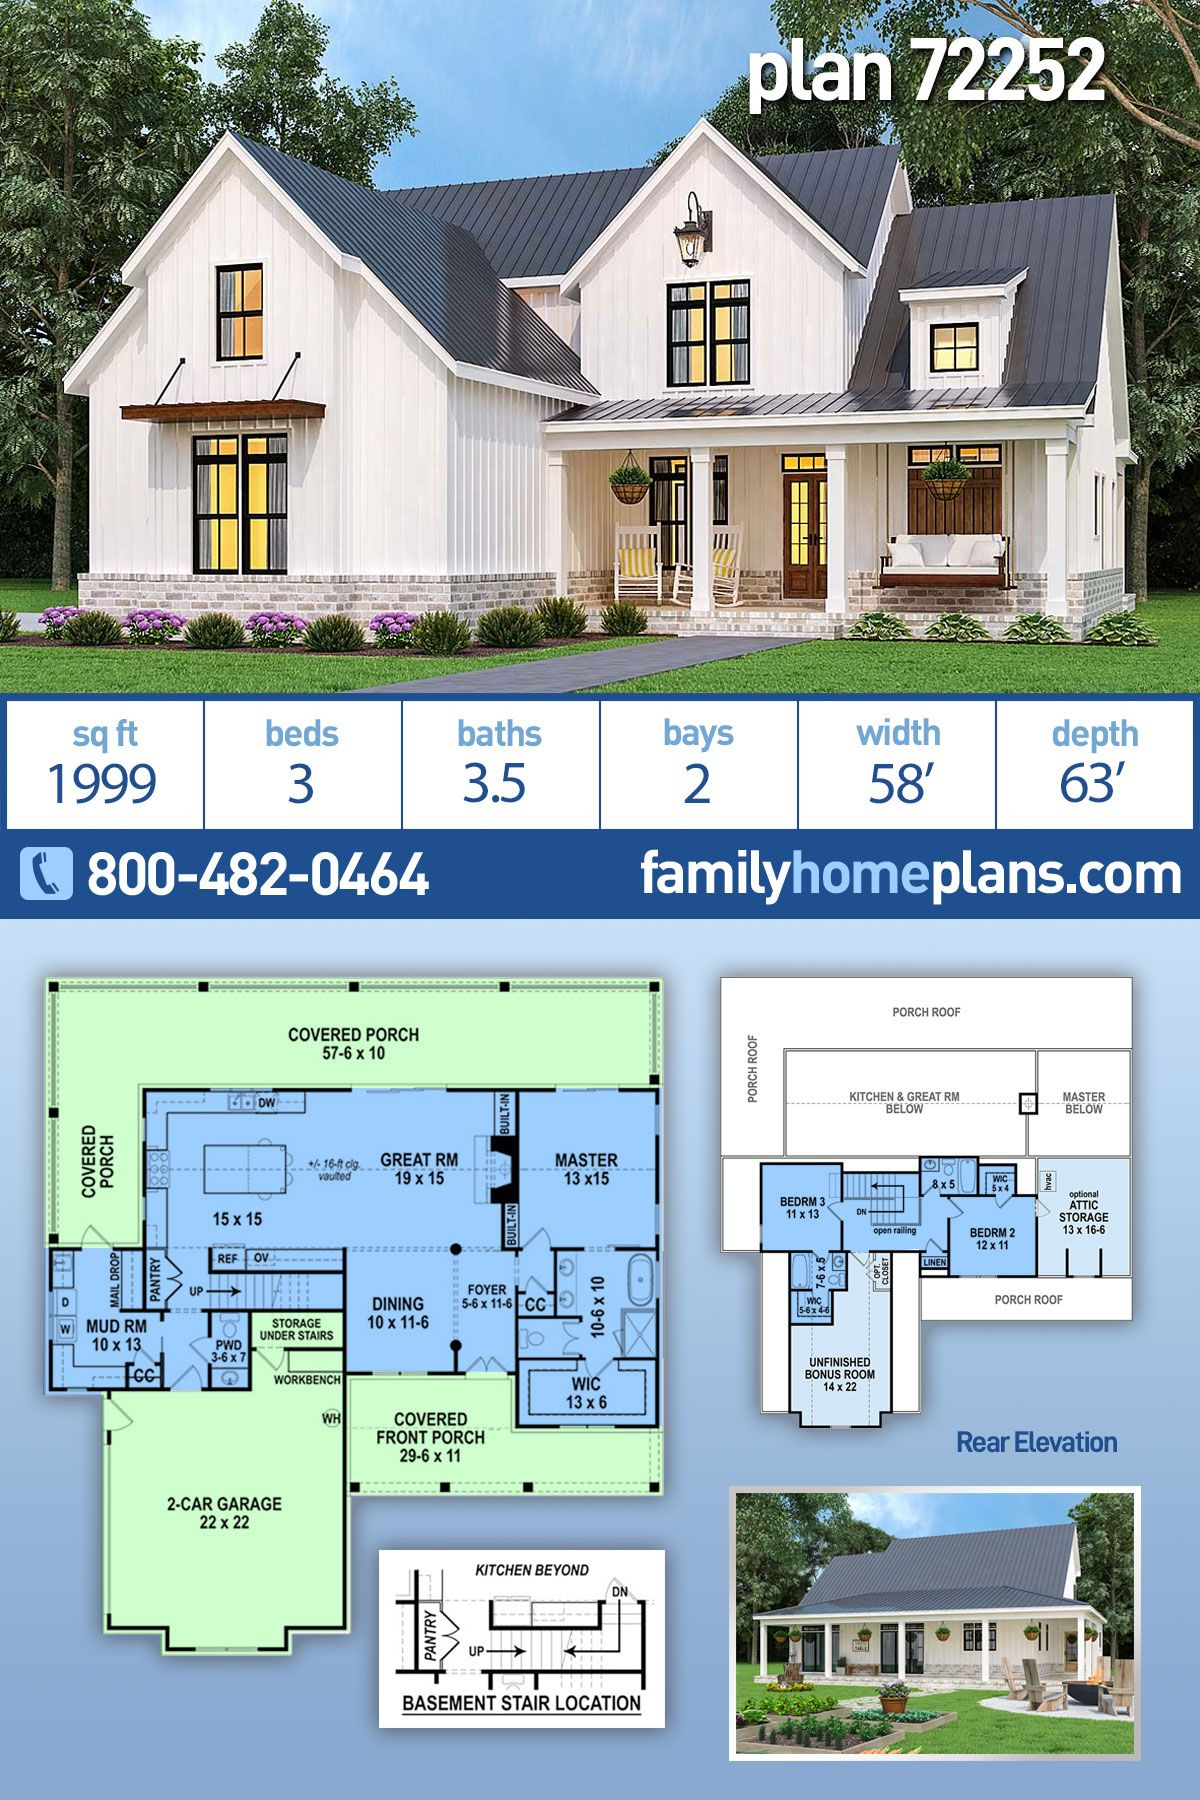 Southern Style House Plan 72252 With 3 Bed 4 Bath 2 Car Garage In 2020 Modern Farmhouse Plans Farmhouse Plans Family House Plans